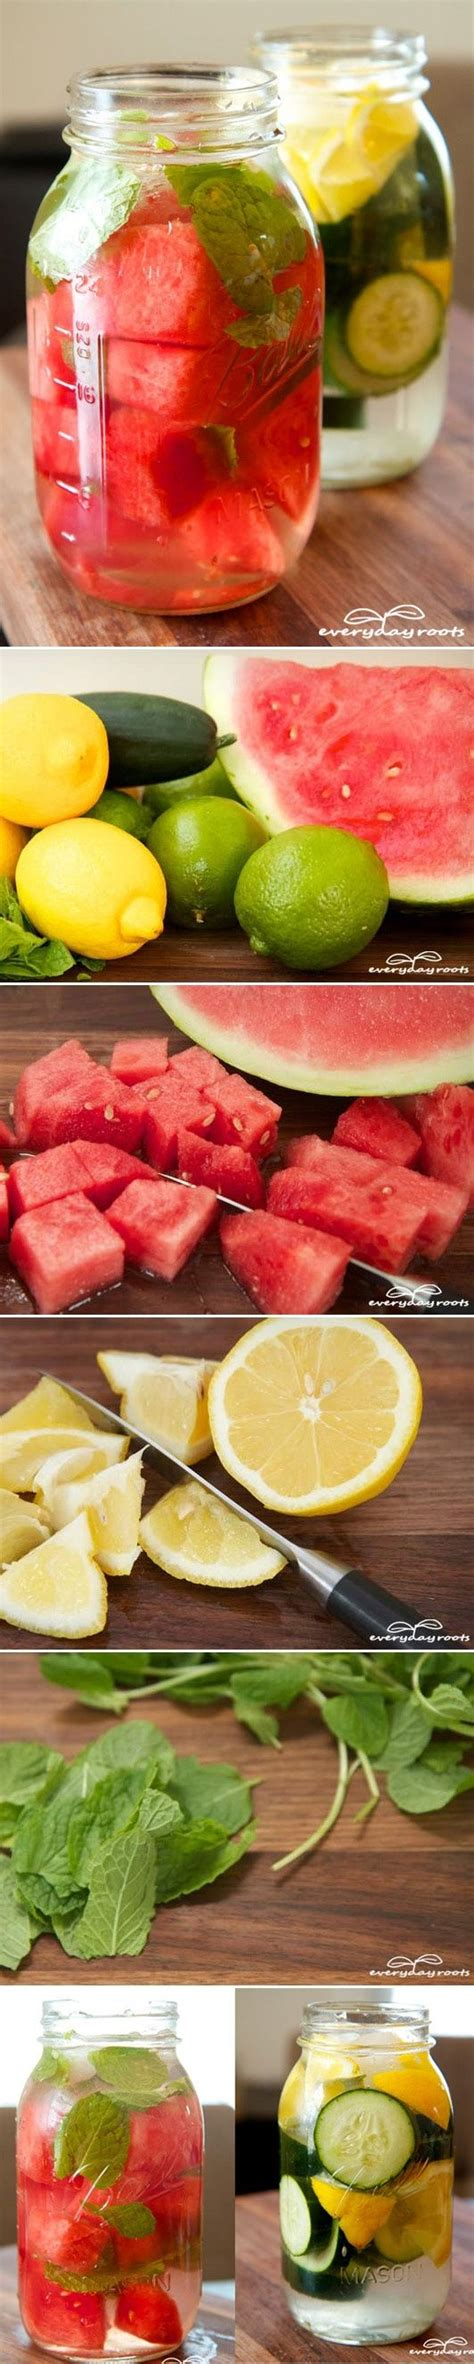 Make Your Own Detox Drink Test by 482 Best Images About Fabulous And Strong On